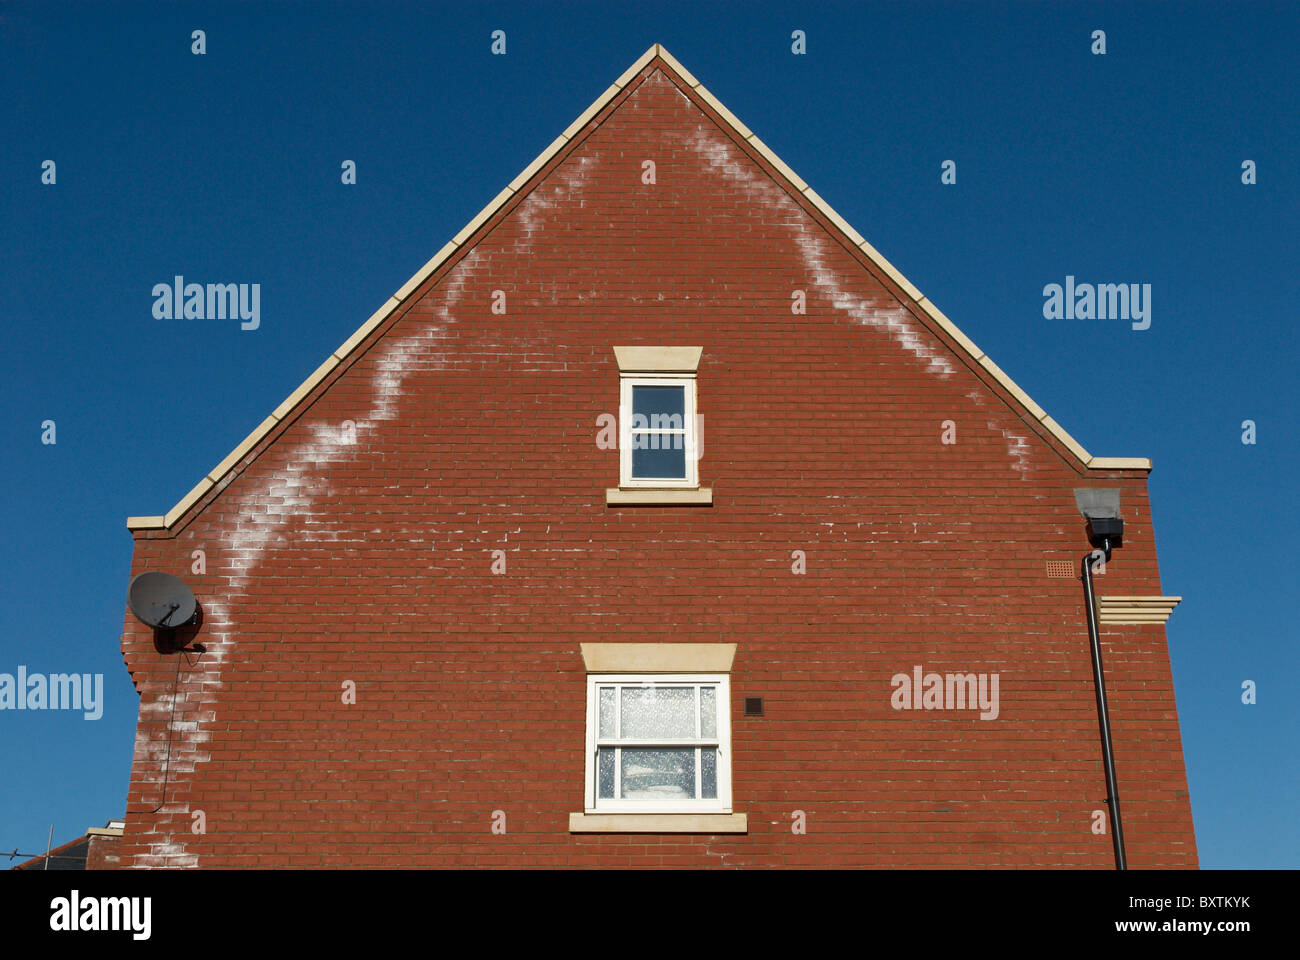 Brick wall of house showing signs of damp UK - Stock Image